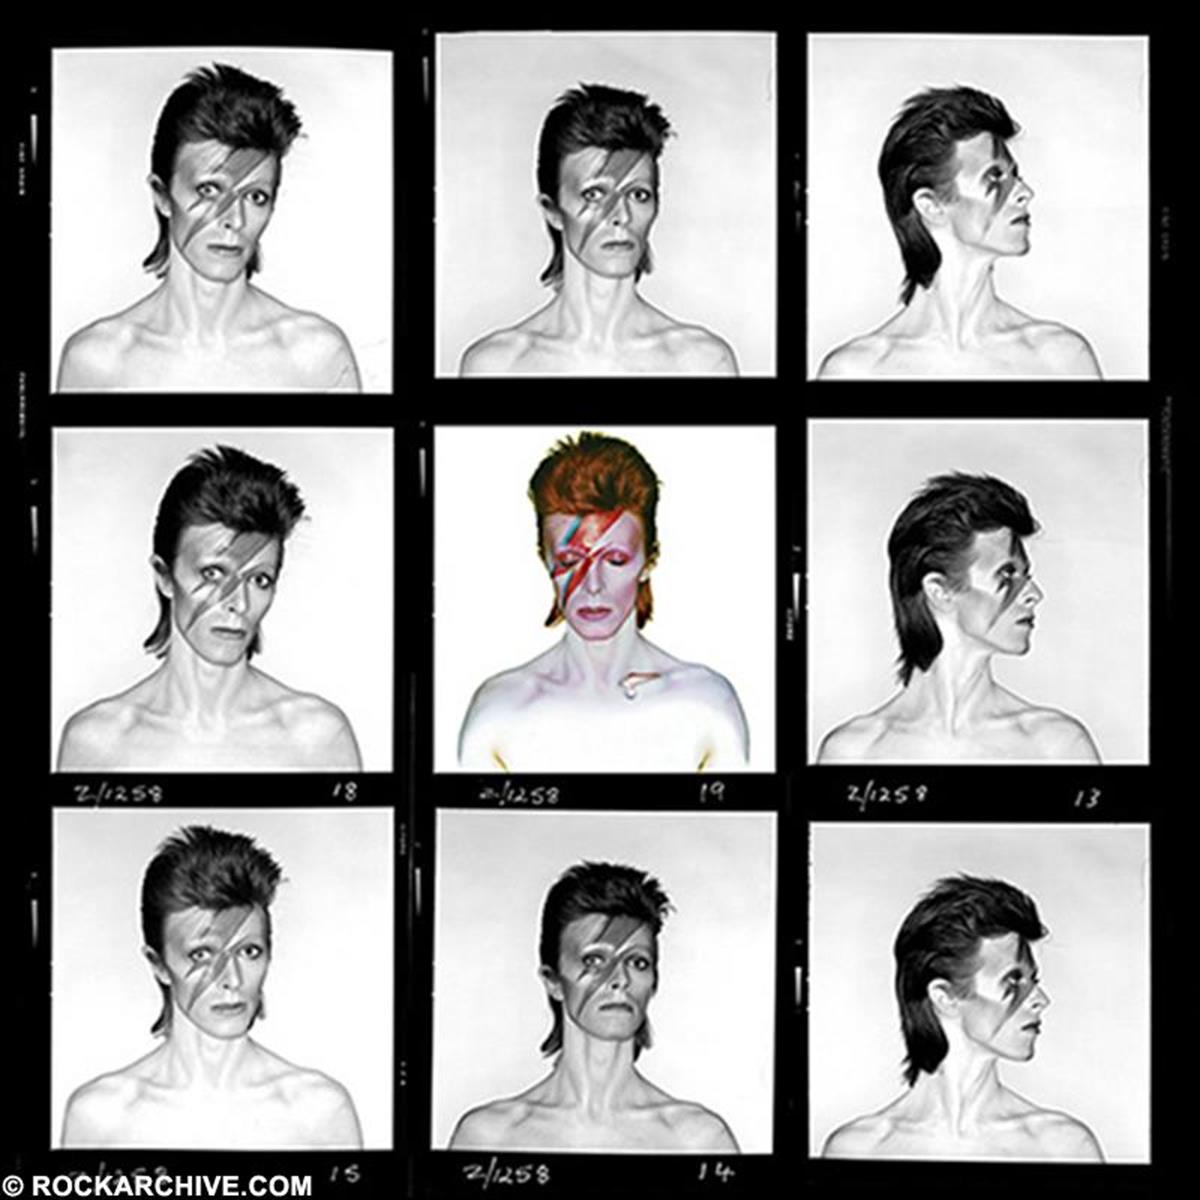 Aladdin Sane contact sheet - apart from the Kodak Ektachrome colourfilm, Duffy also shot two rolls of black and white film. This contact sheet was put together by Duffy's son Chris and includes the original colour album cover image. © Brian Duffy